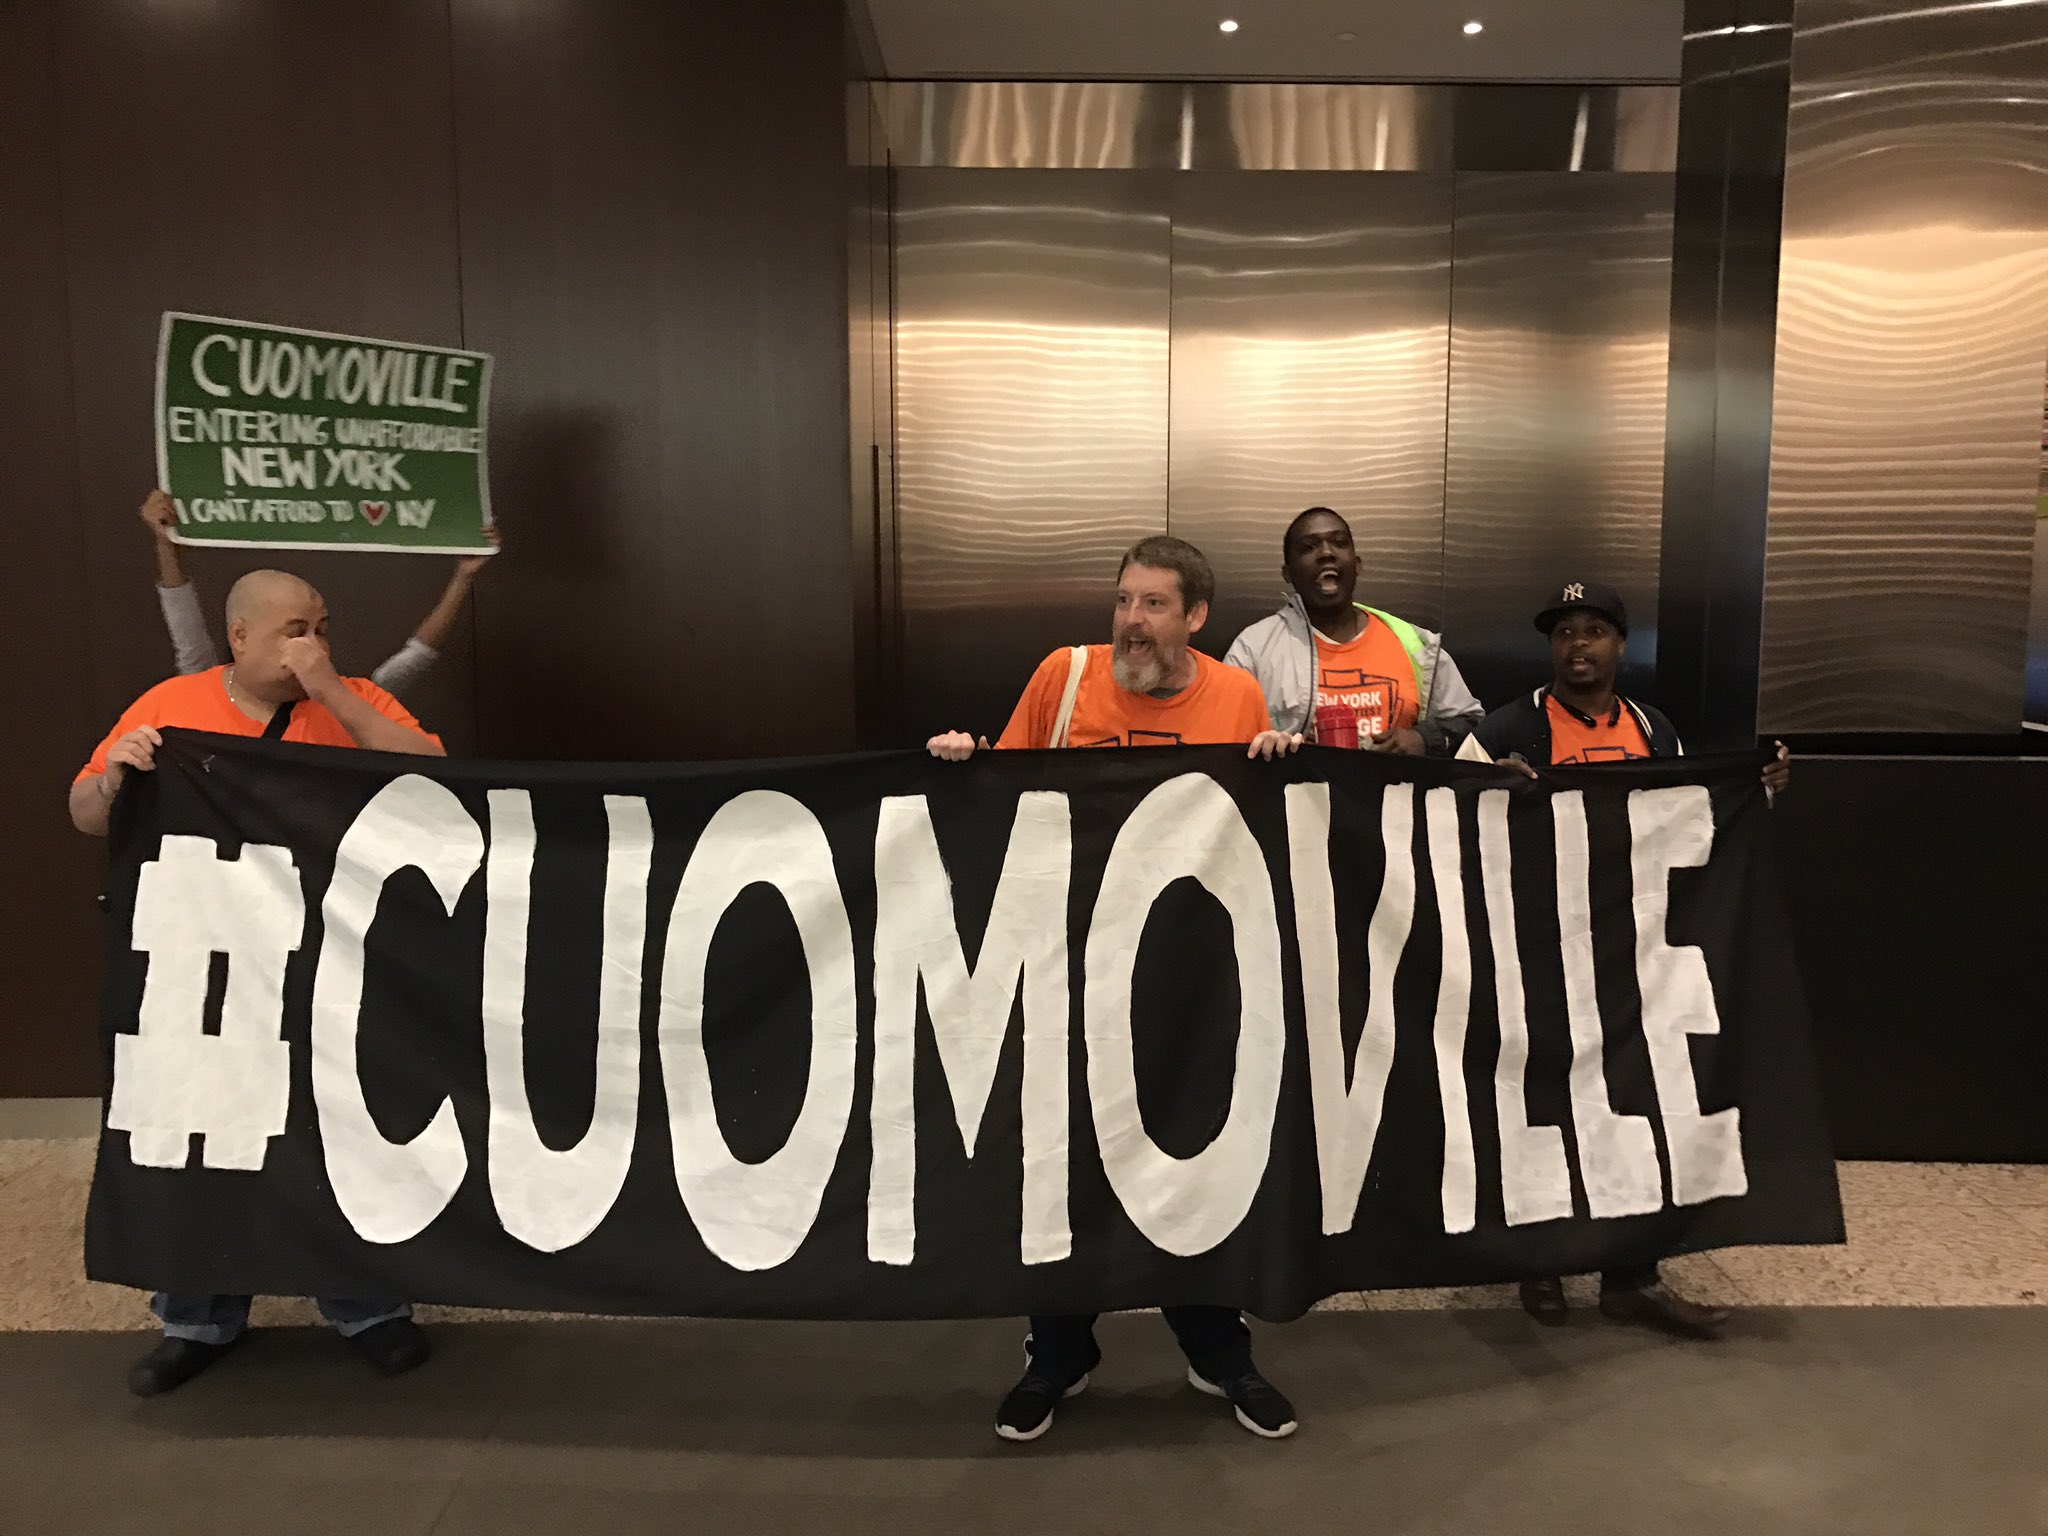 #cuomoville goes to Jared Kushner's office -- Trump's son-in-law and slumlord -- who harasses tenants bc Cuomo's weak rent laws https://t.co/4ox6il4ifa